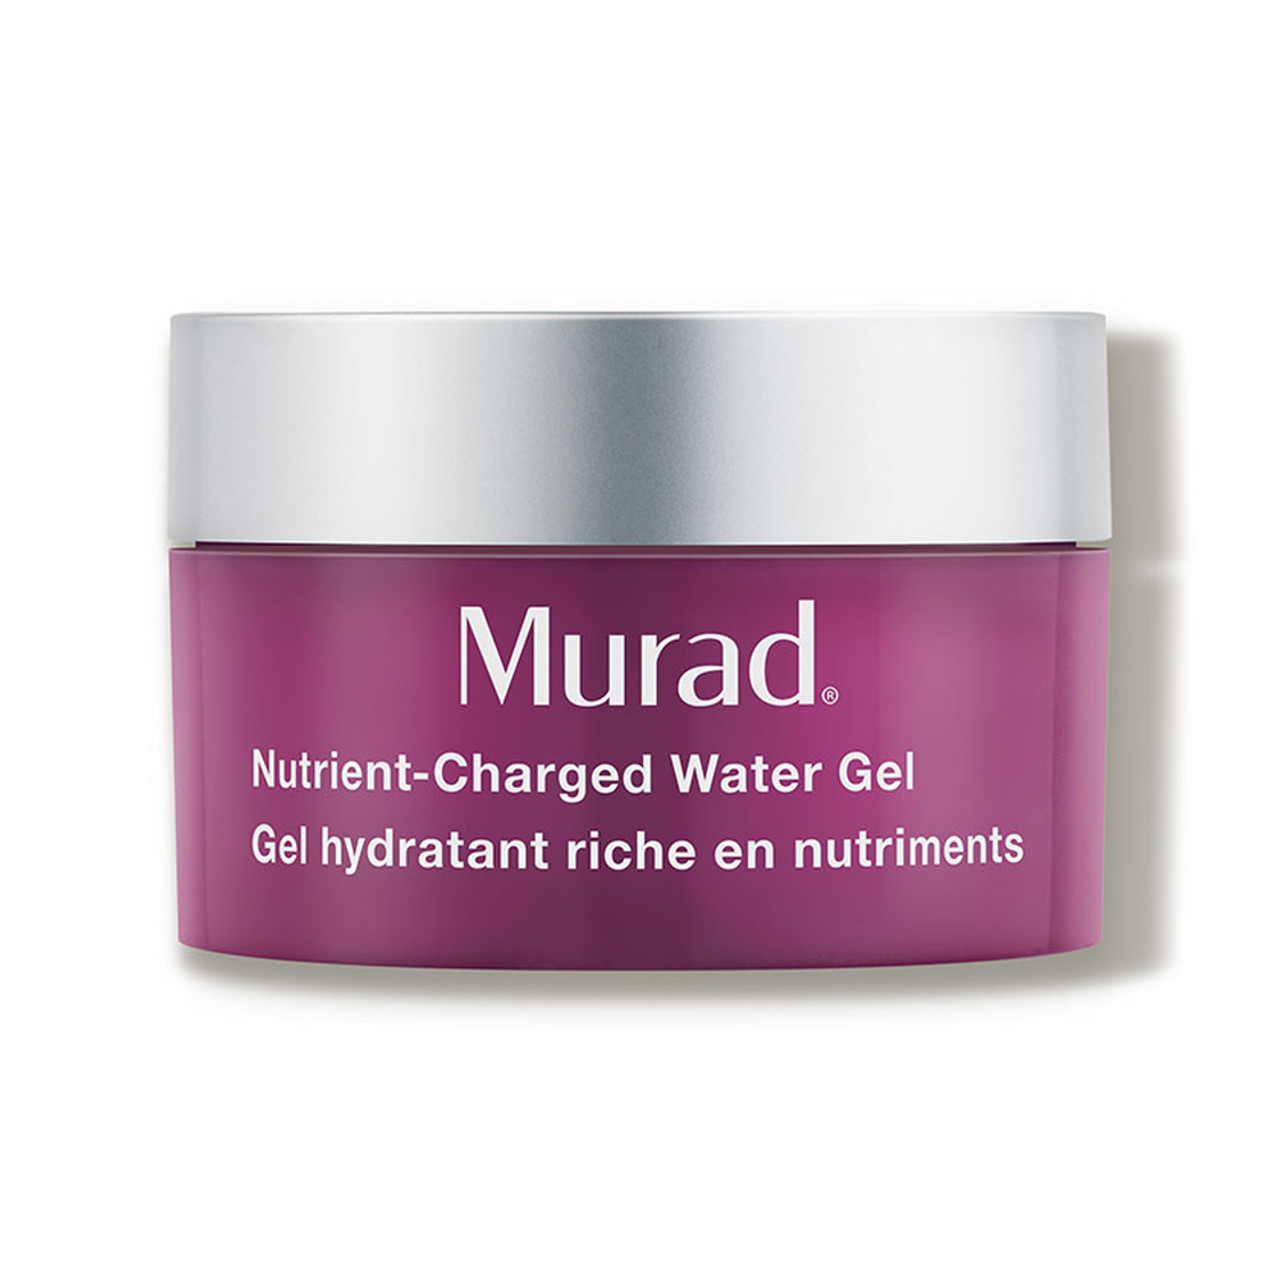 Murad Age Reform™ Nutrient-Charged Water Gel (discontinued) BeautifiedYou.com